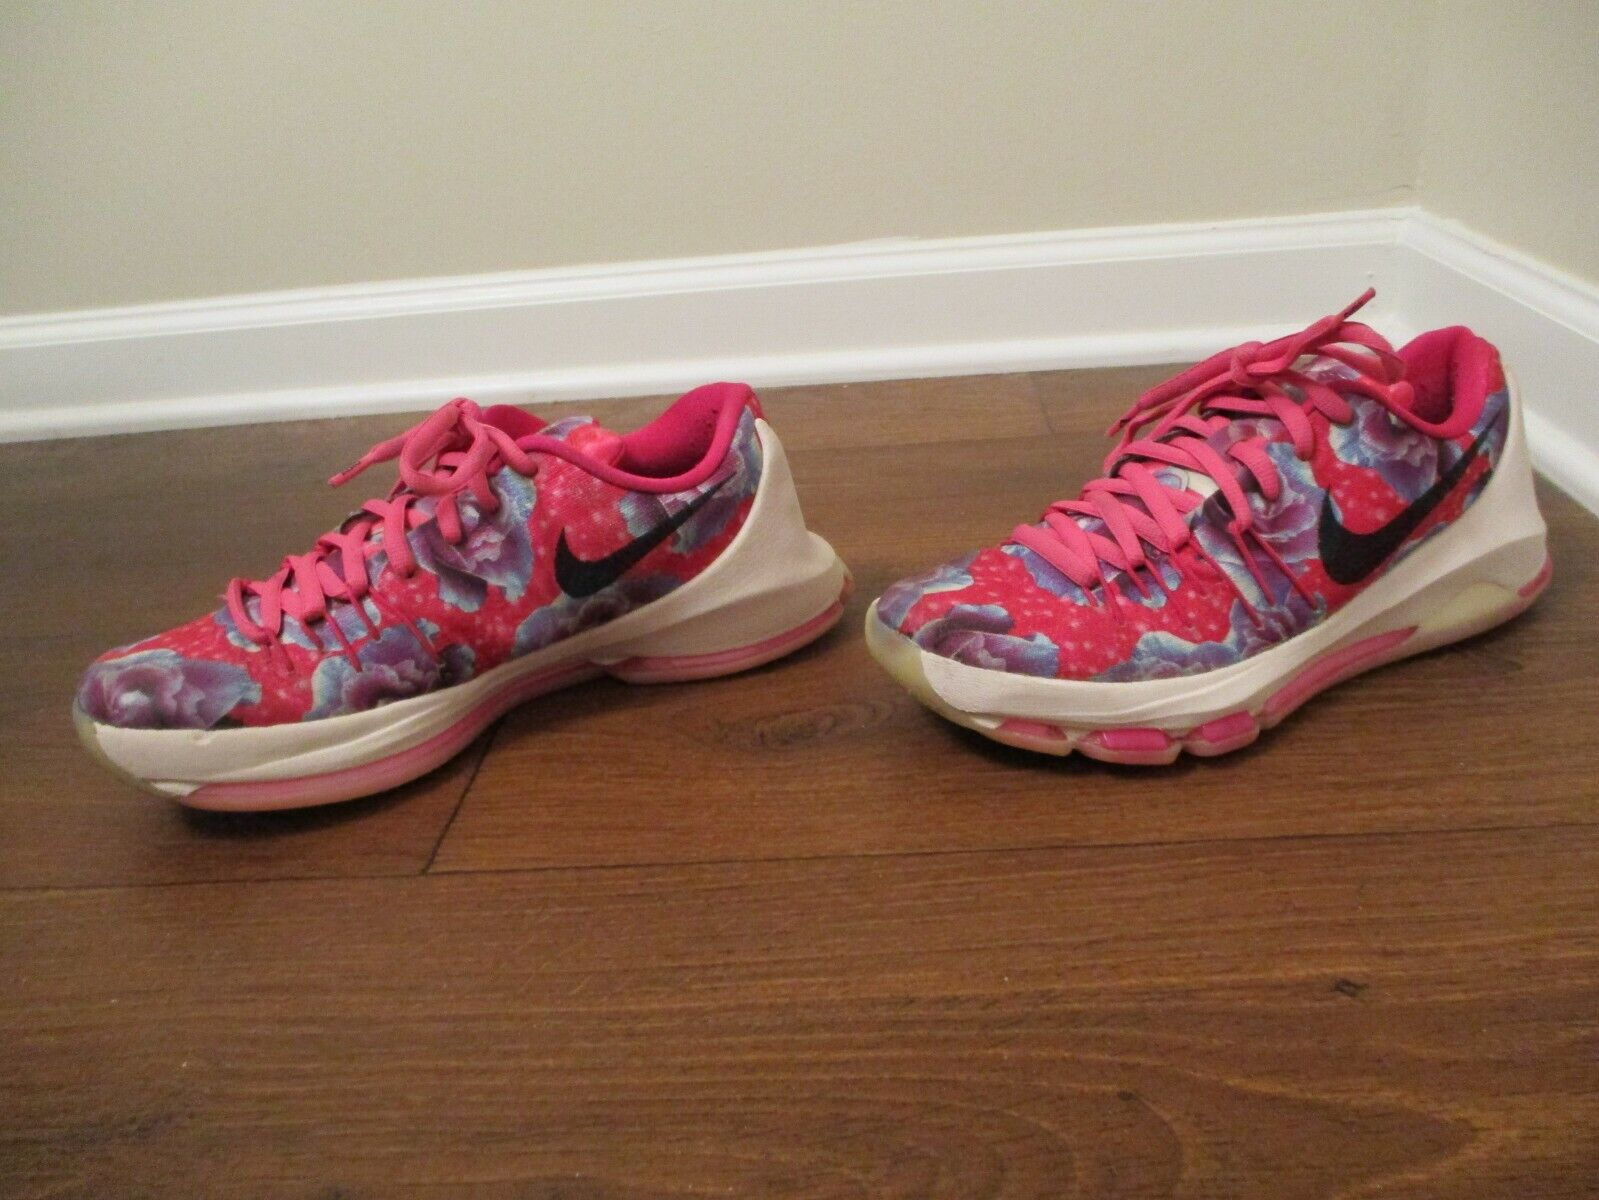 Used Worn Size 9 Nike KD 8 Prm Aunt Pearl shoes Vivid Pink, Black, bluee, White